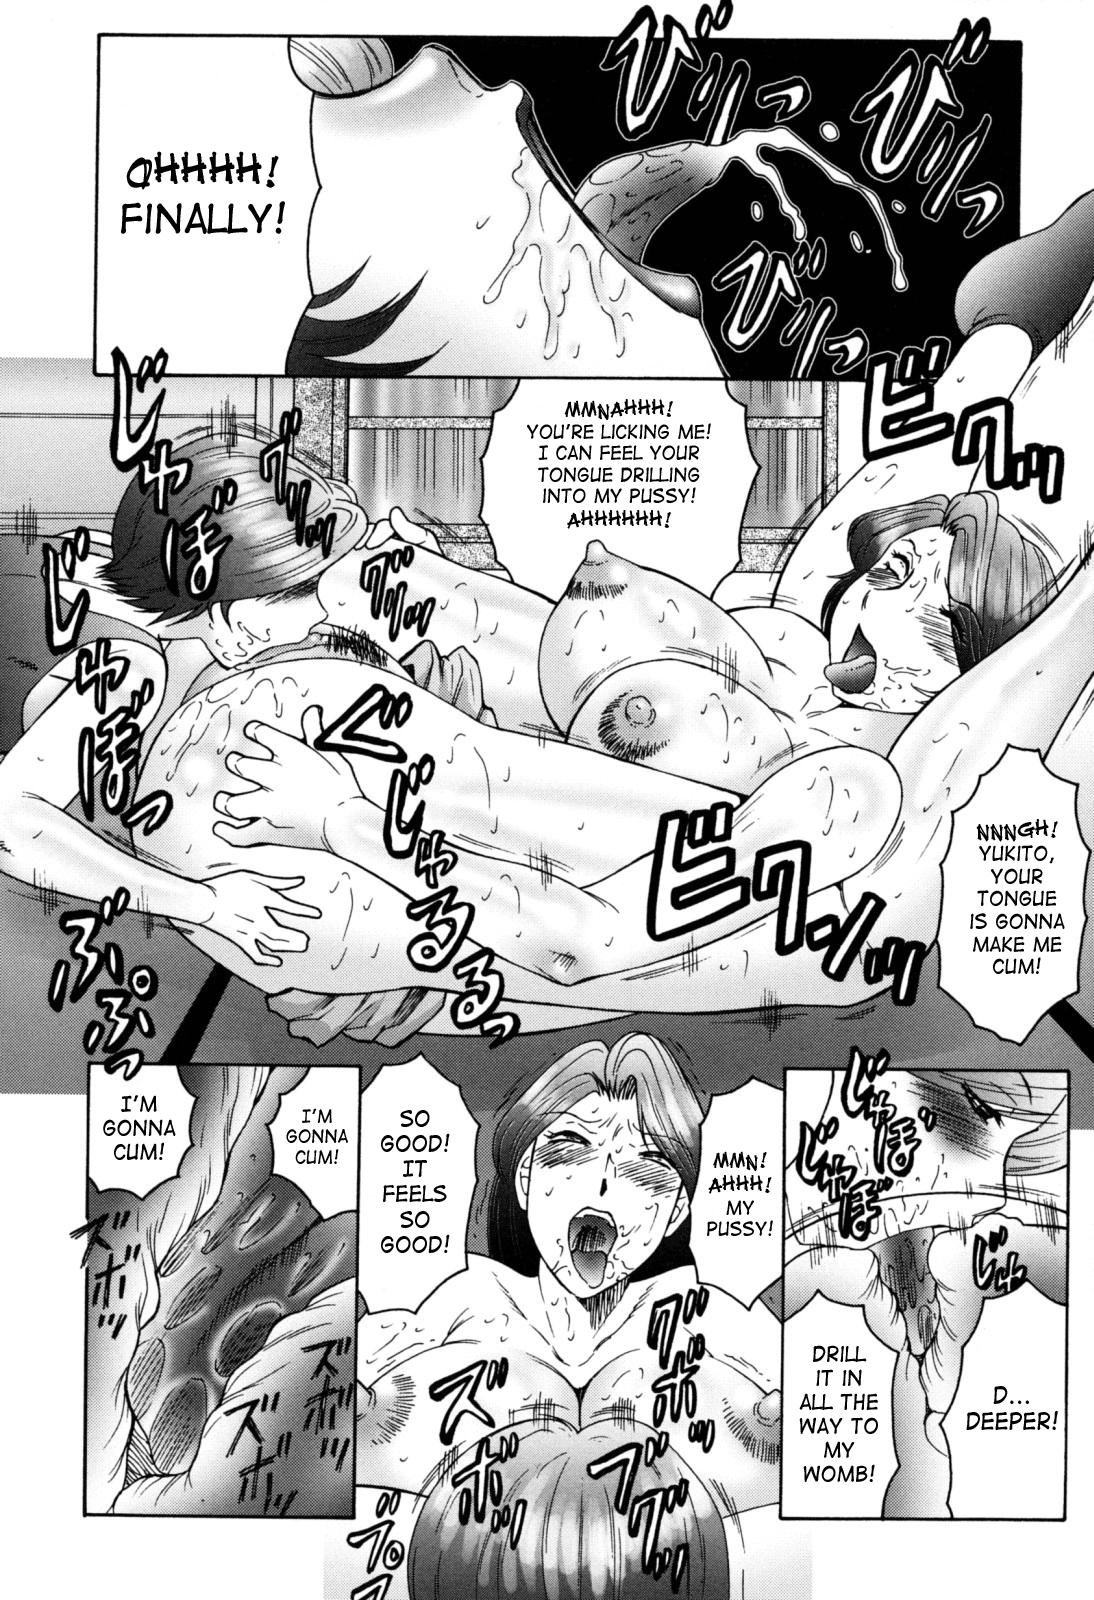 [Fuusen Club] Boshino Toriko - The Captive of Mother and the Son | Enslaved Mother and Son Ch. 1-5 [English] [SaHa] 77